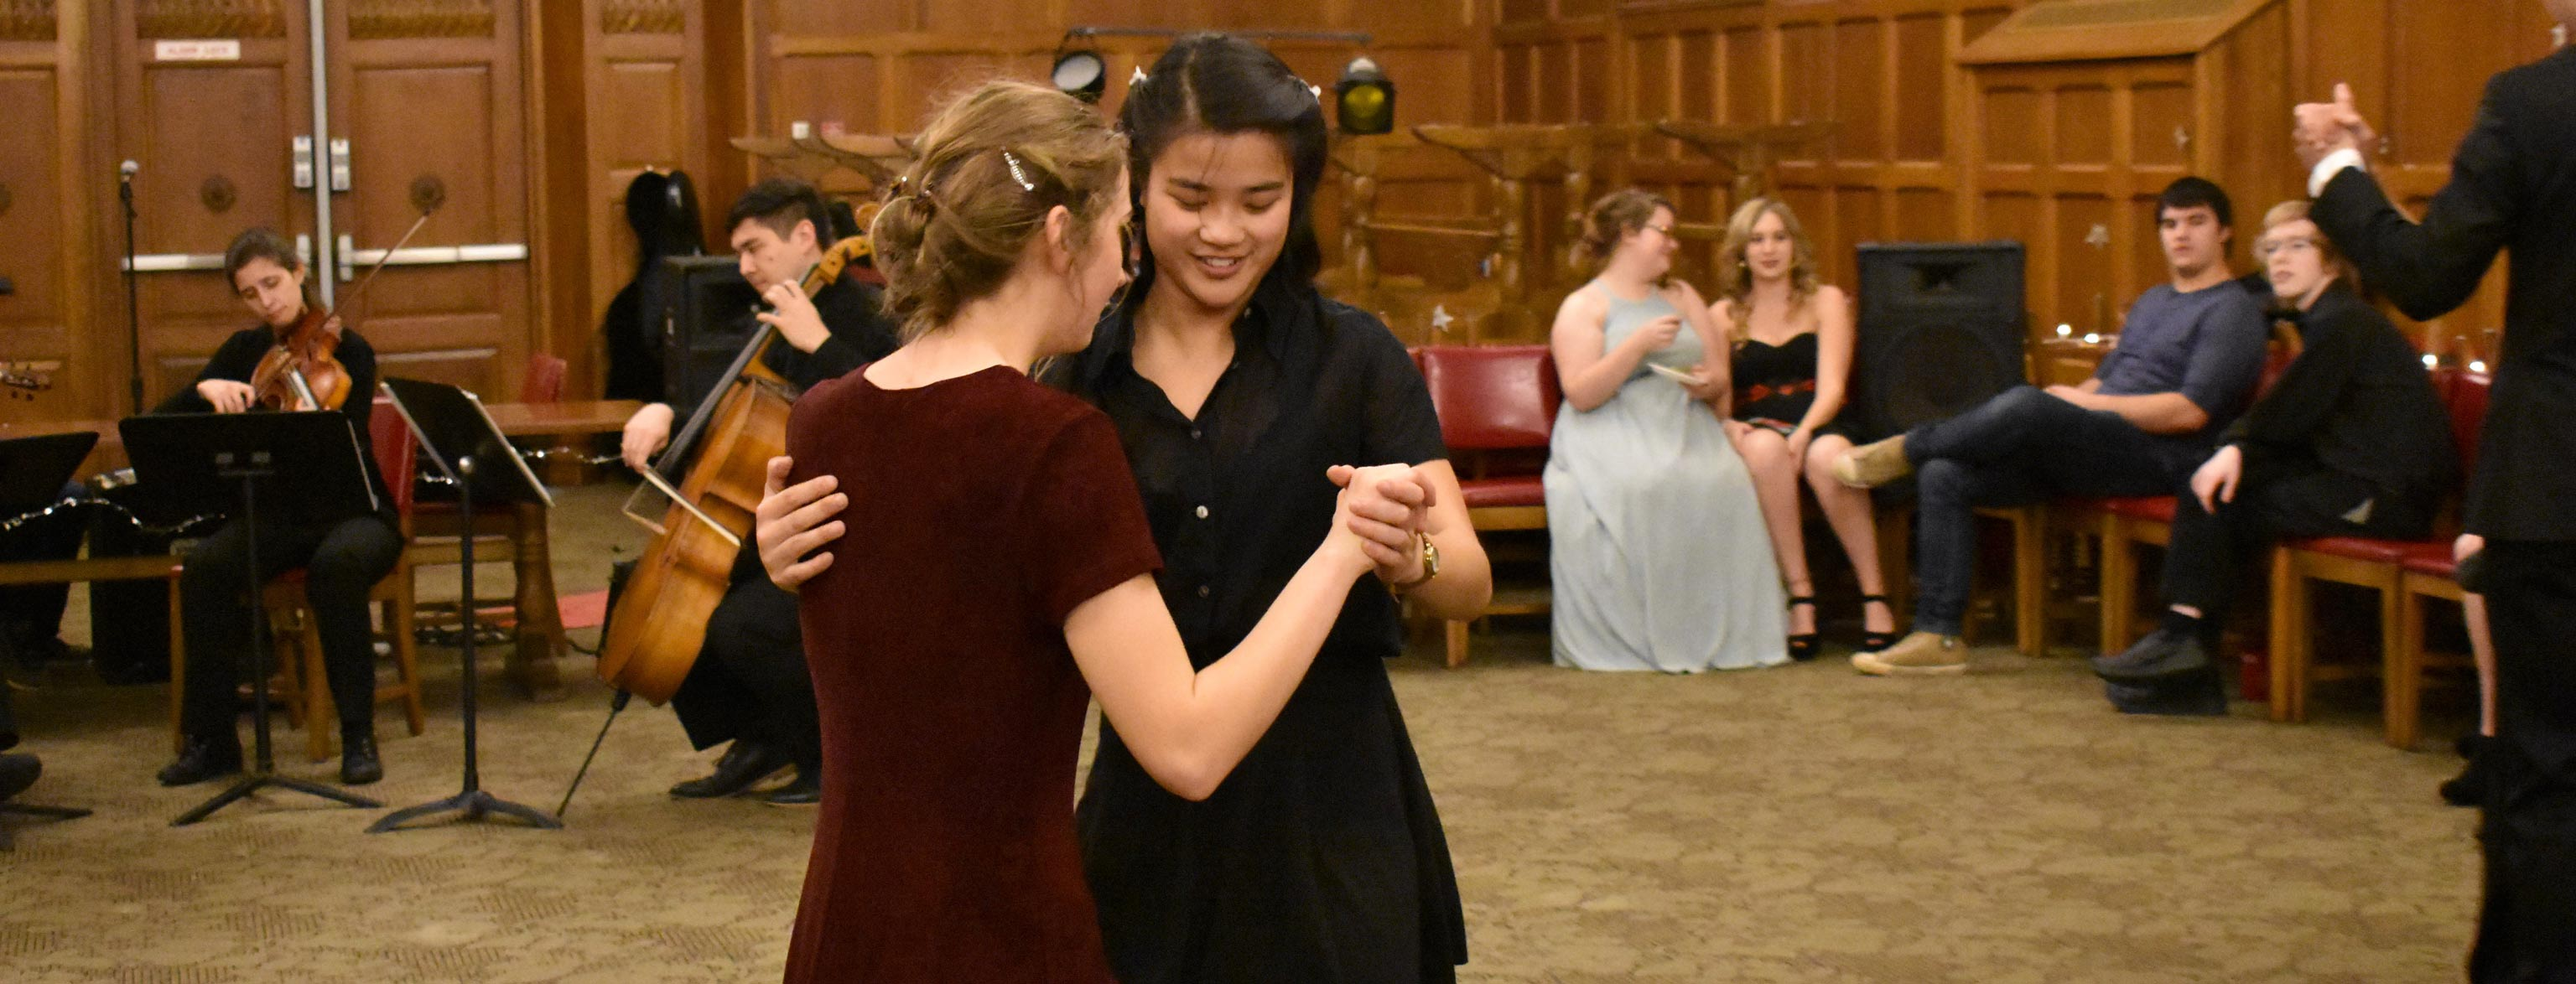 Two female students dance hand-in-hand